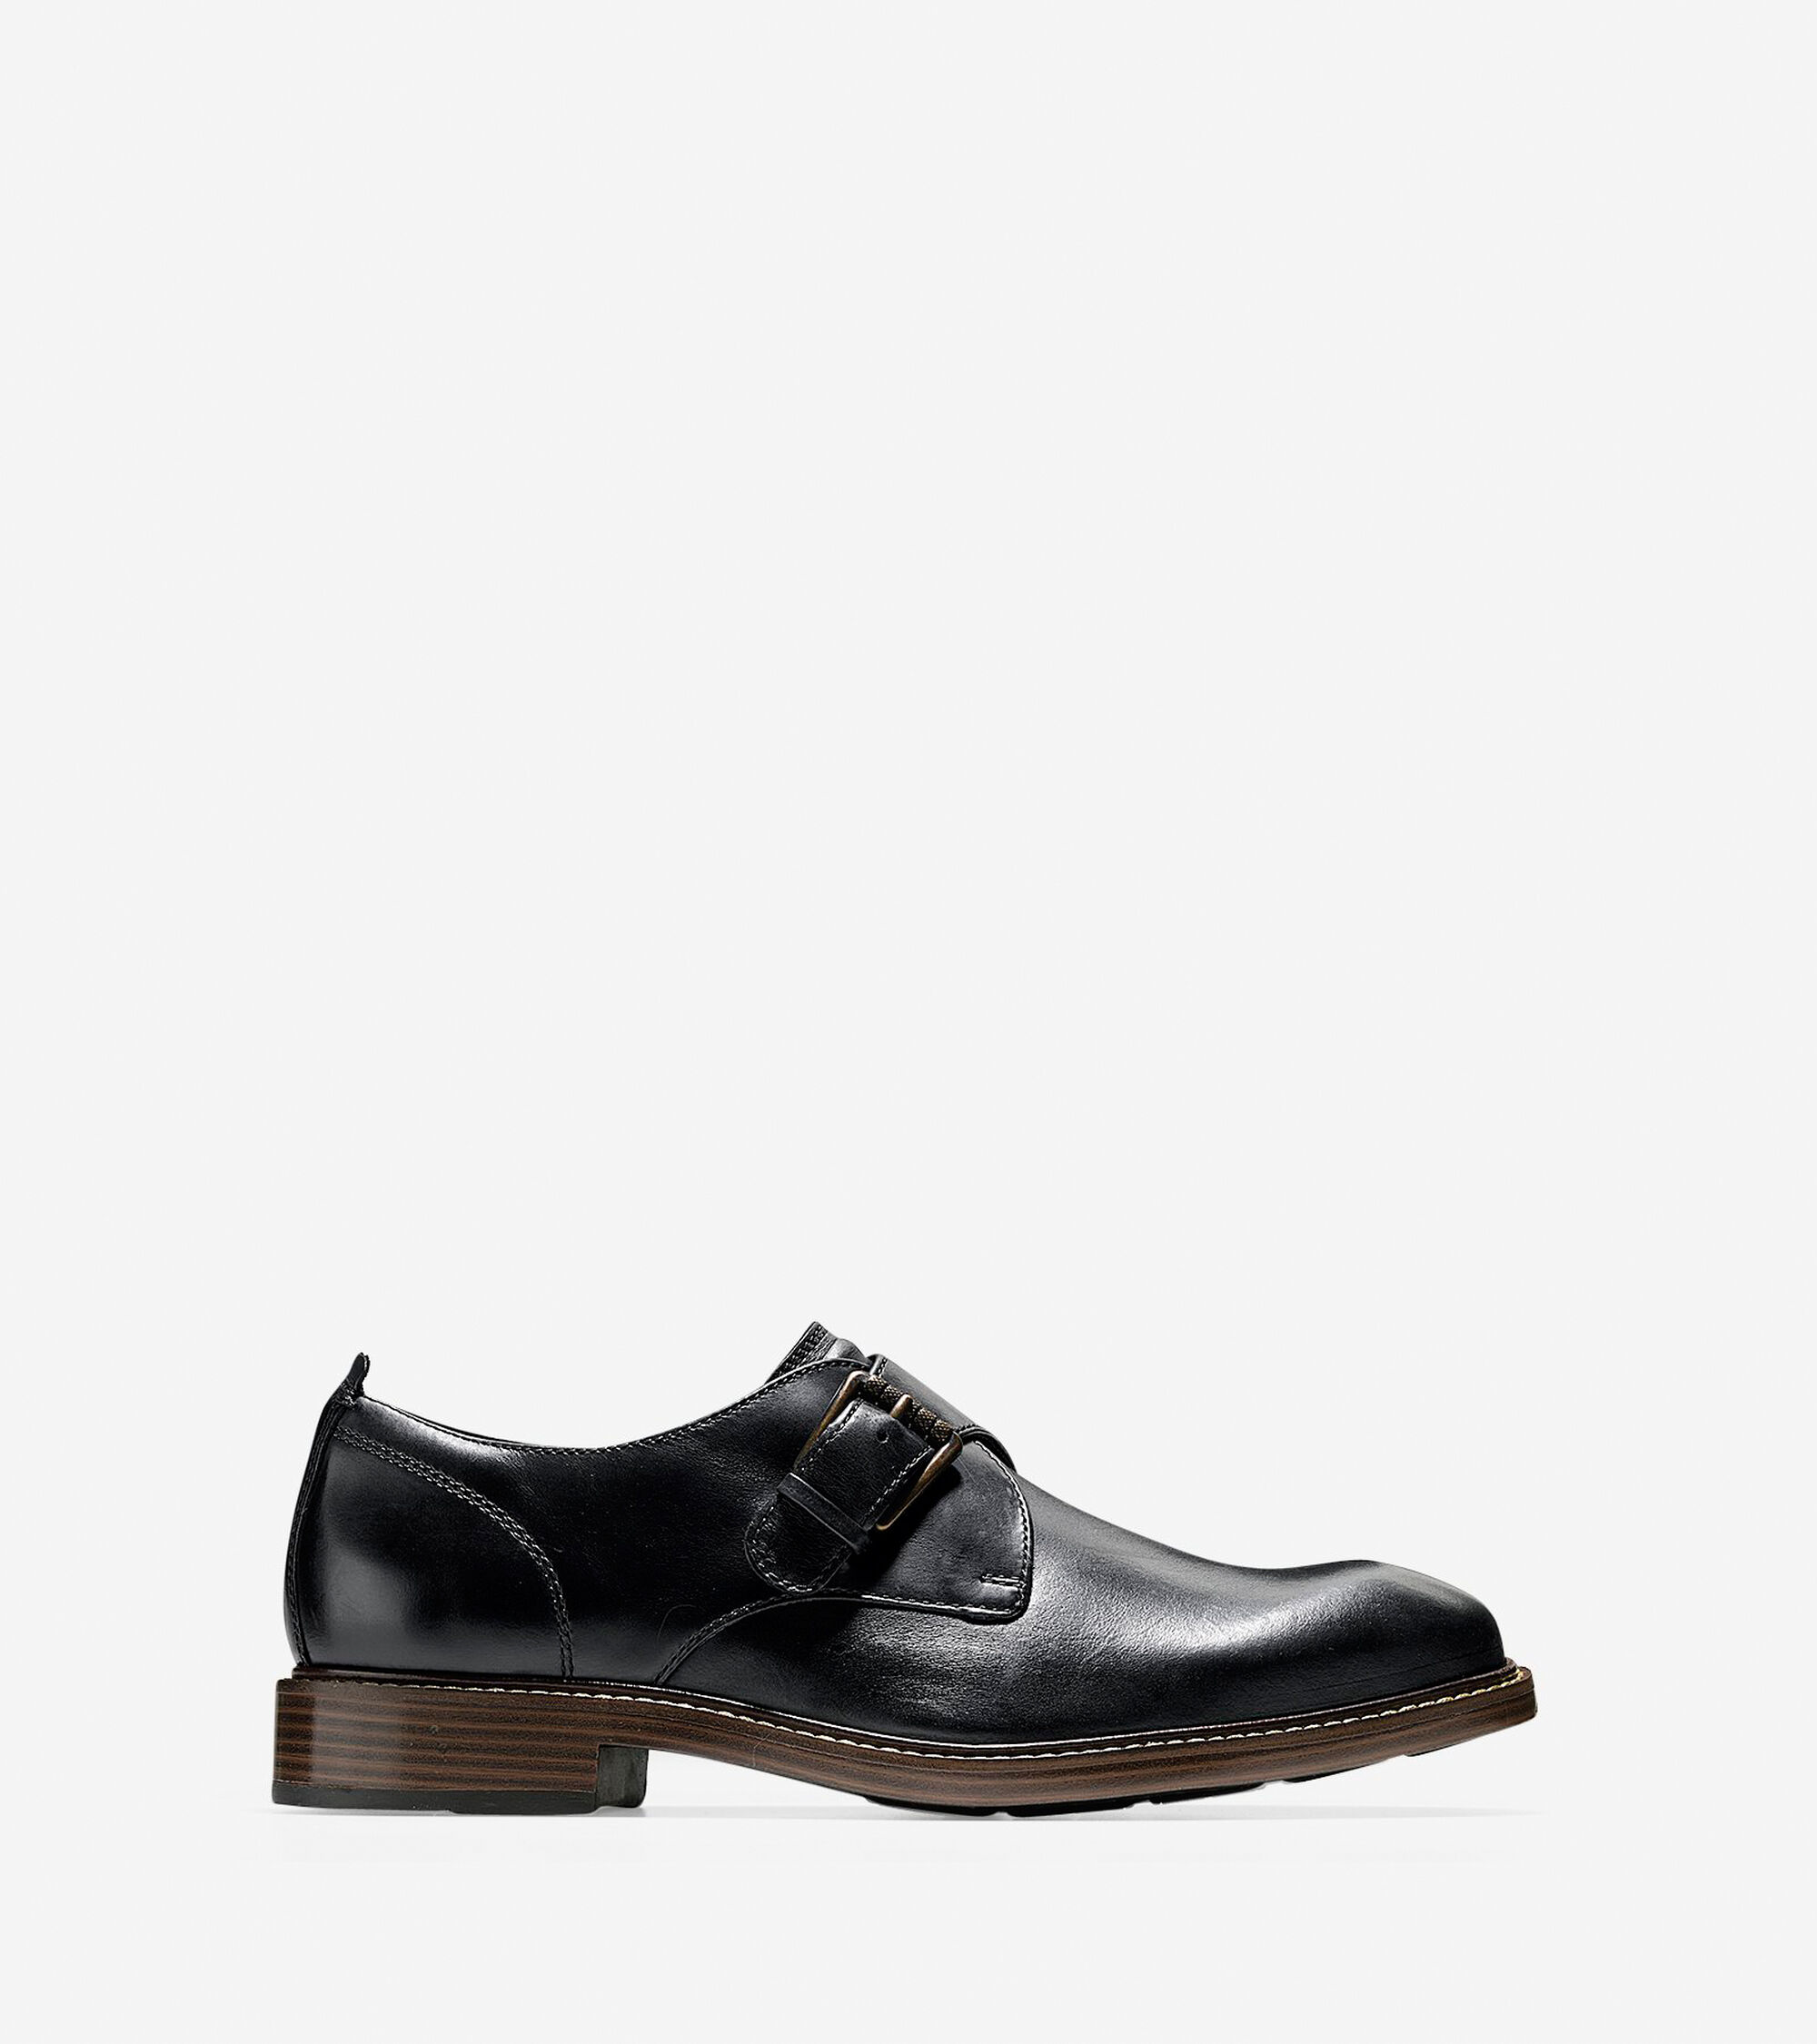 ce94fafb049a Men s Kennedy Single Monk Oxfords in Black